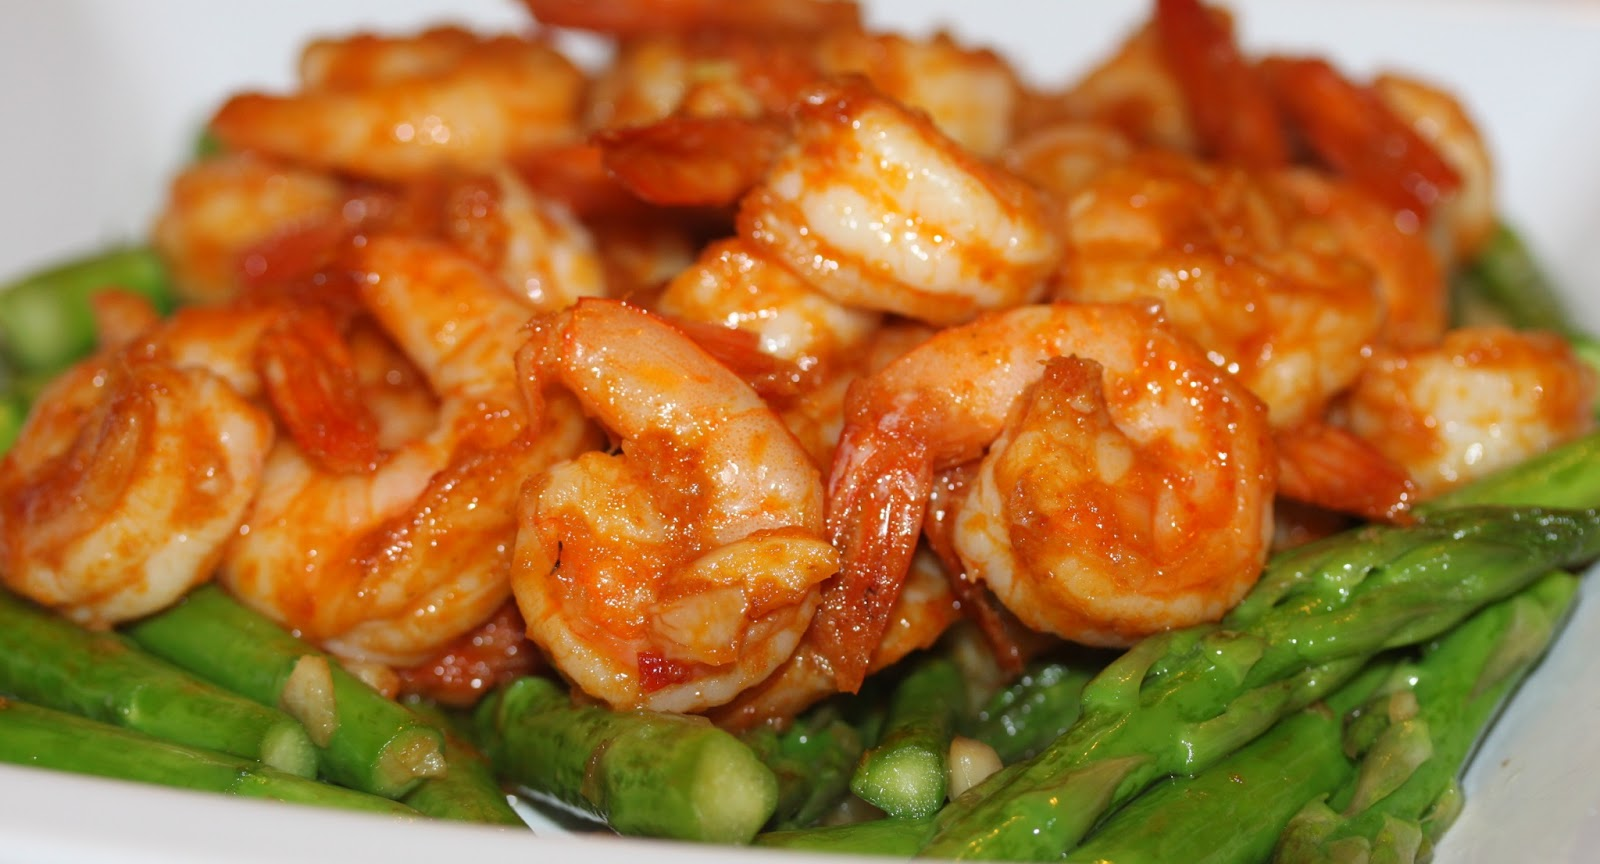 Simply Lecker: Stir Fry Asparagus and Shrimp with Thai Red Curry Paste